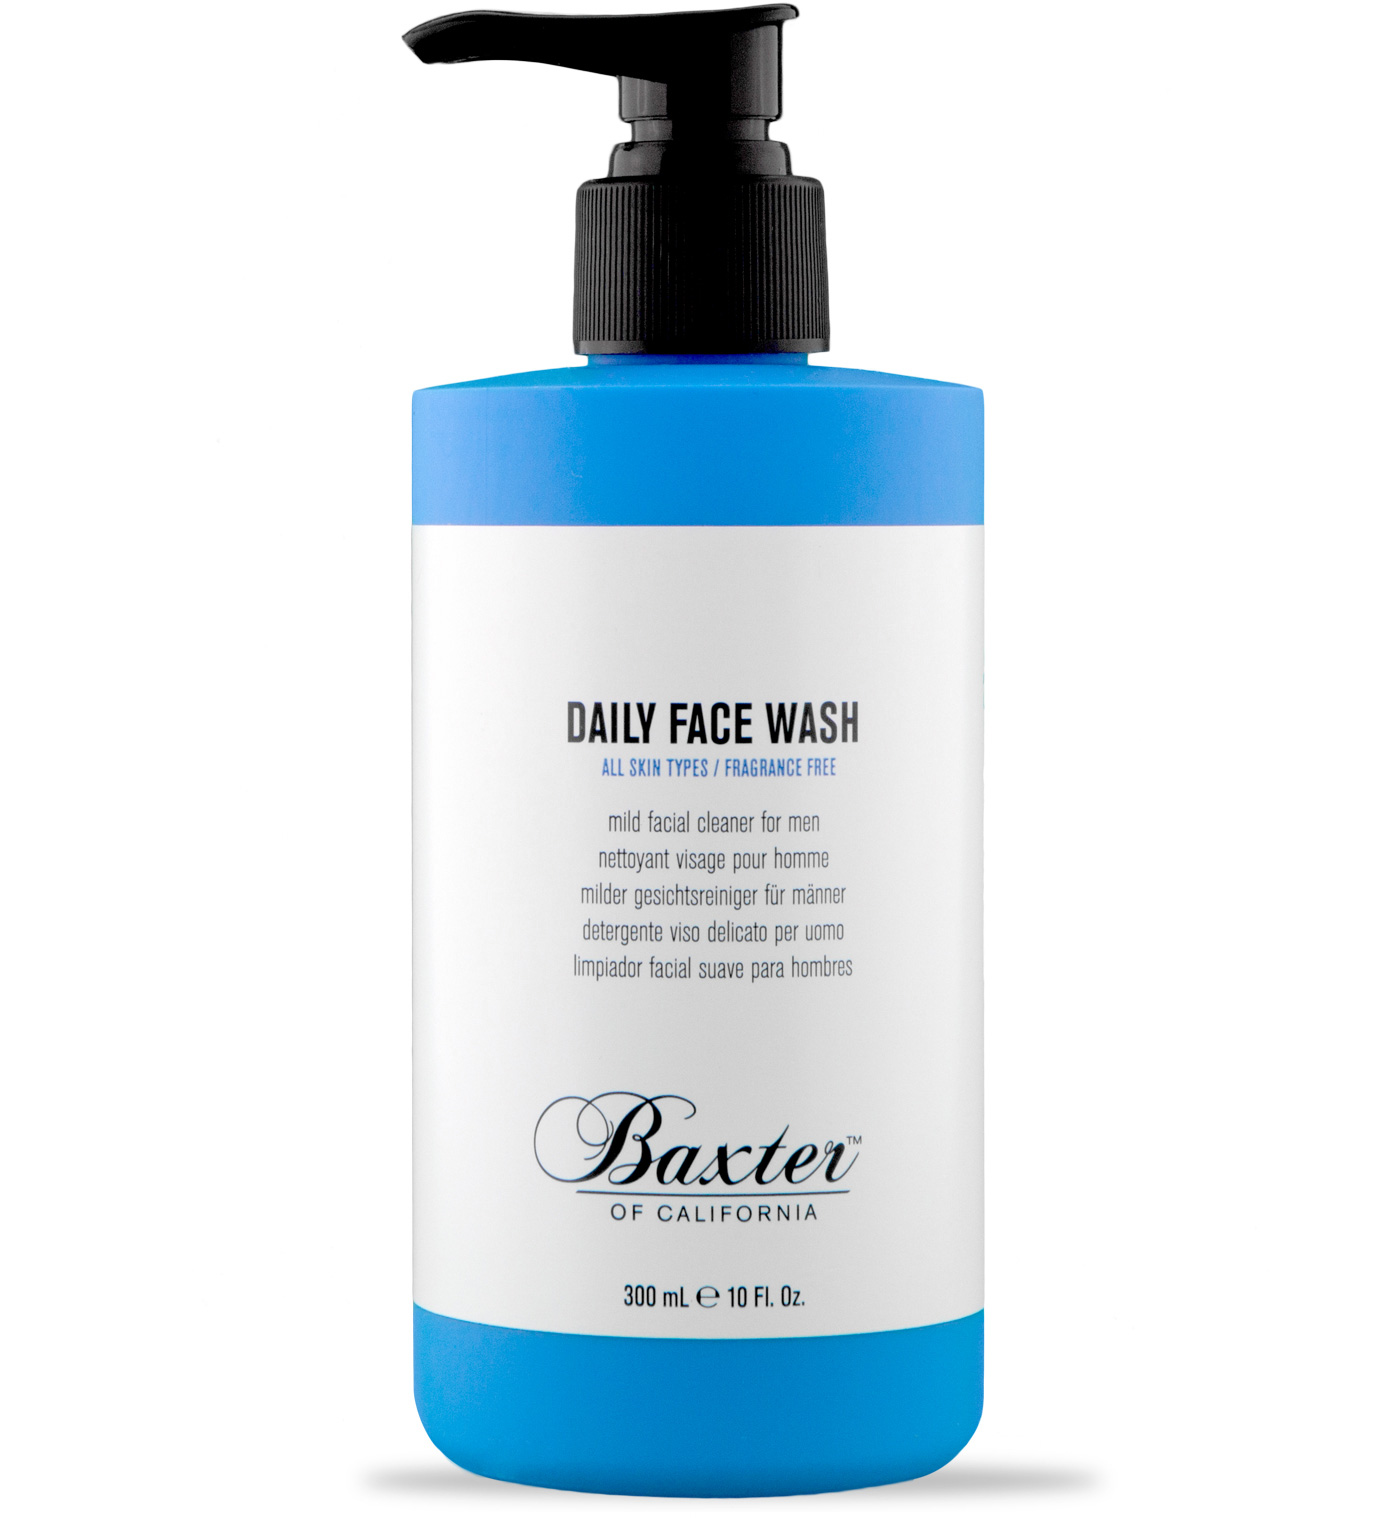 Baxter of California Daily Face Wash